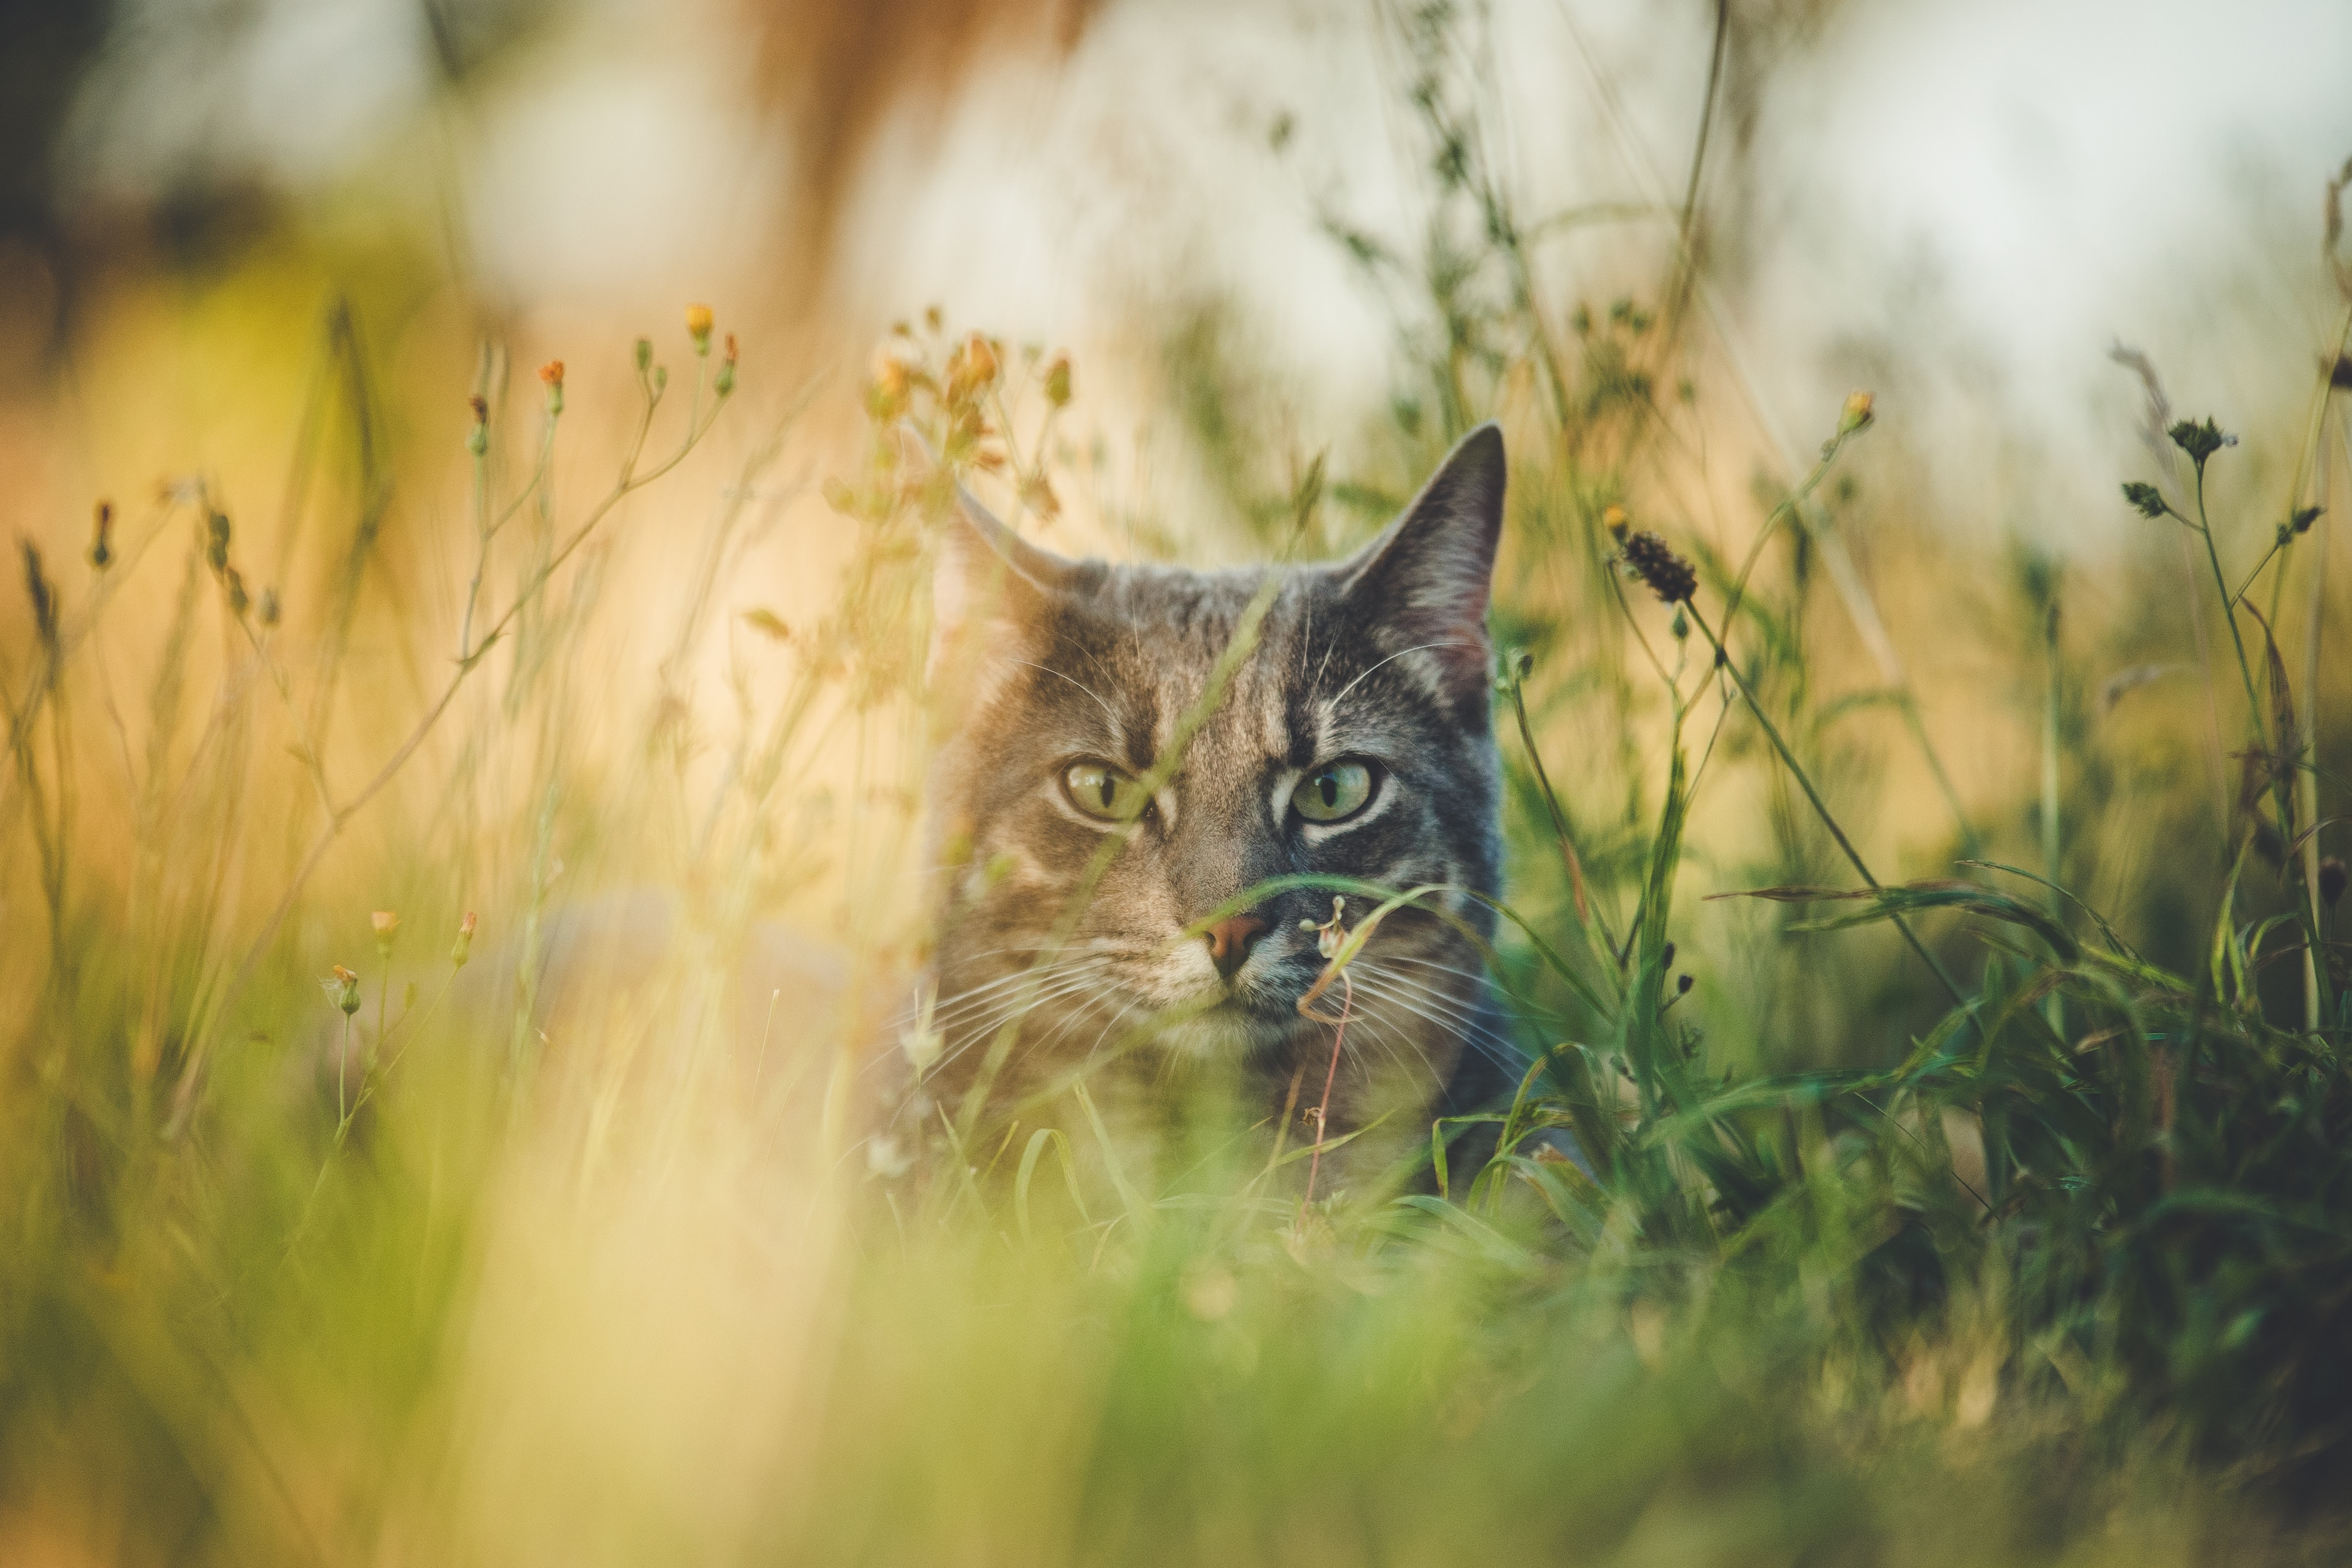 56451 download wallpaper Animals, Grass, Cat, Pet, Hide, Animal screensavers and pictures for free